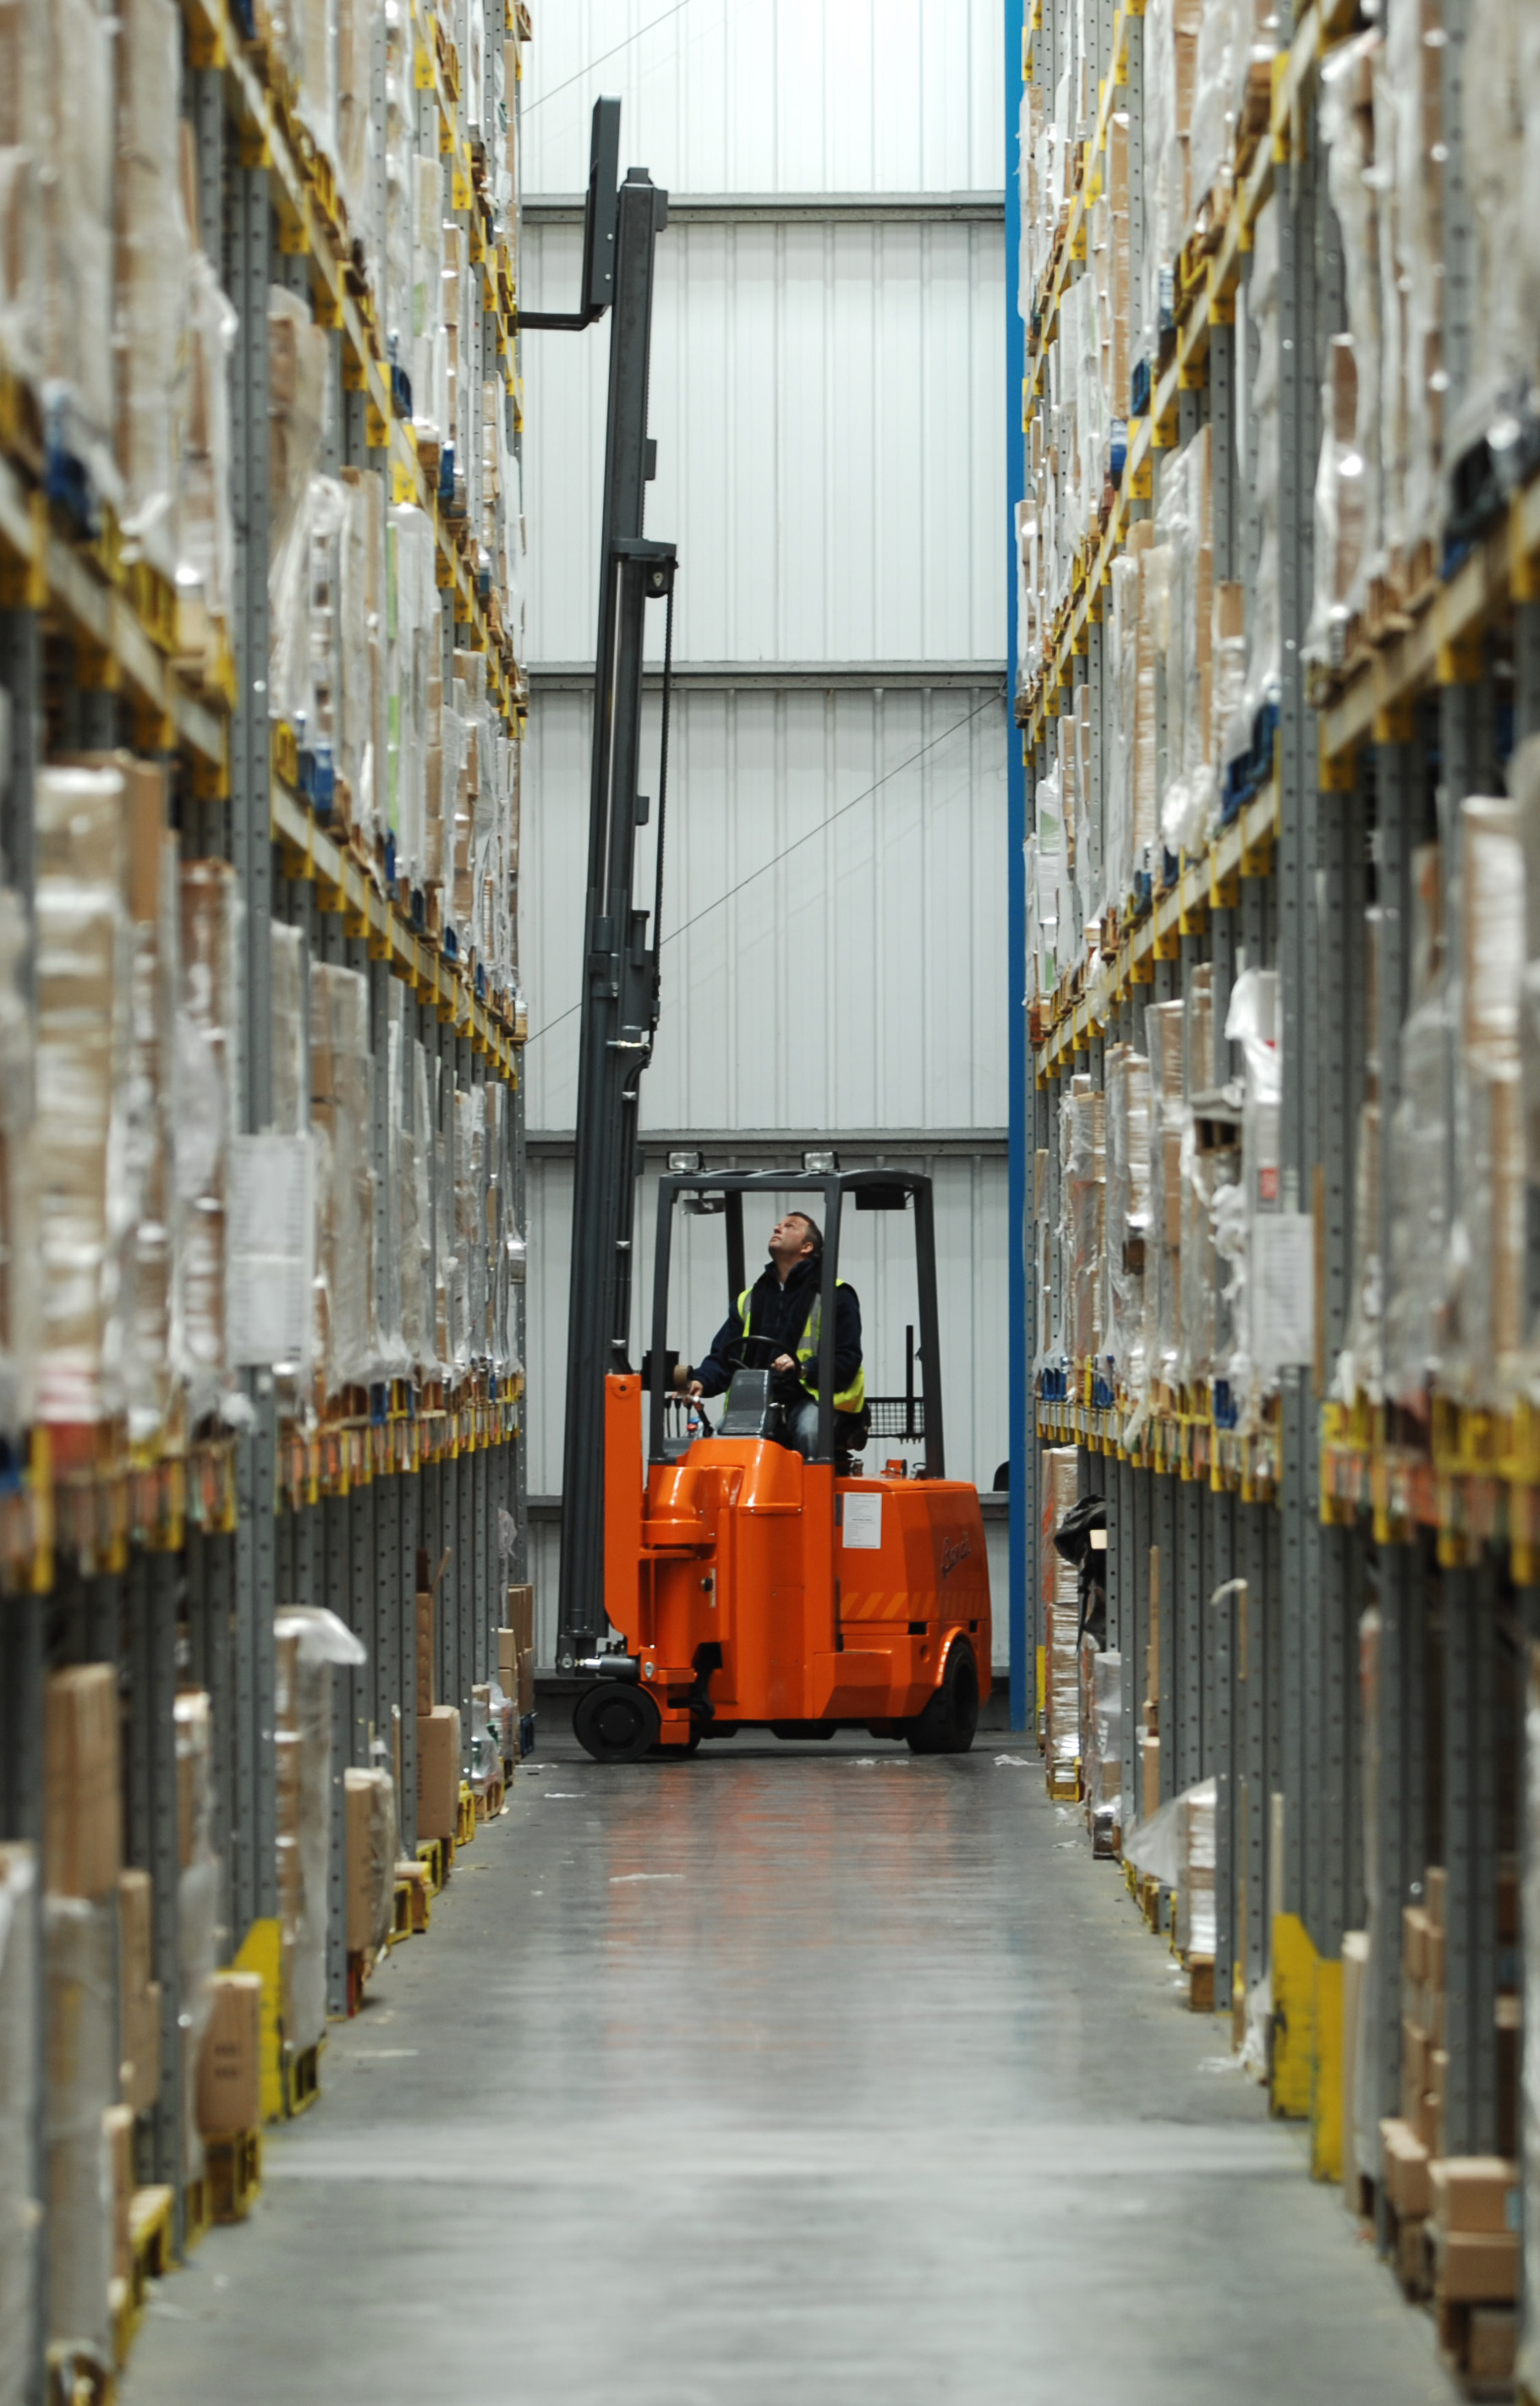 Incorrect Use of Forklift Injures Employee